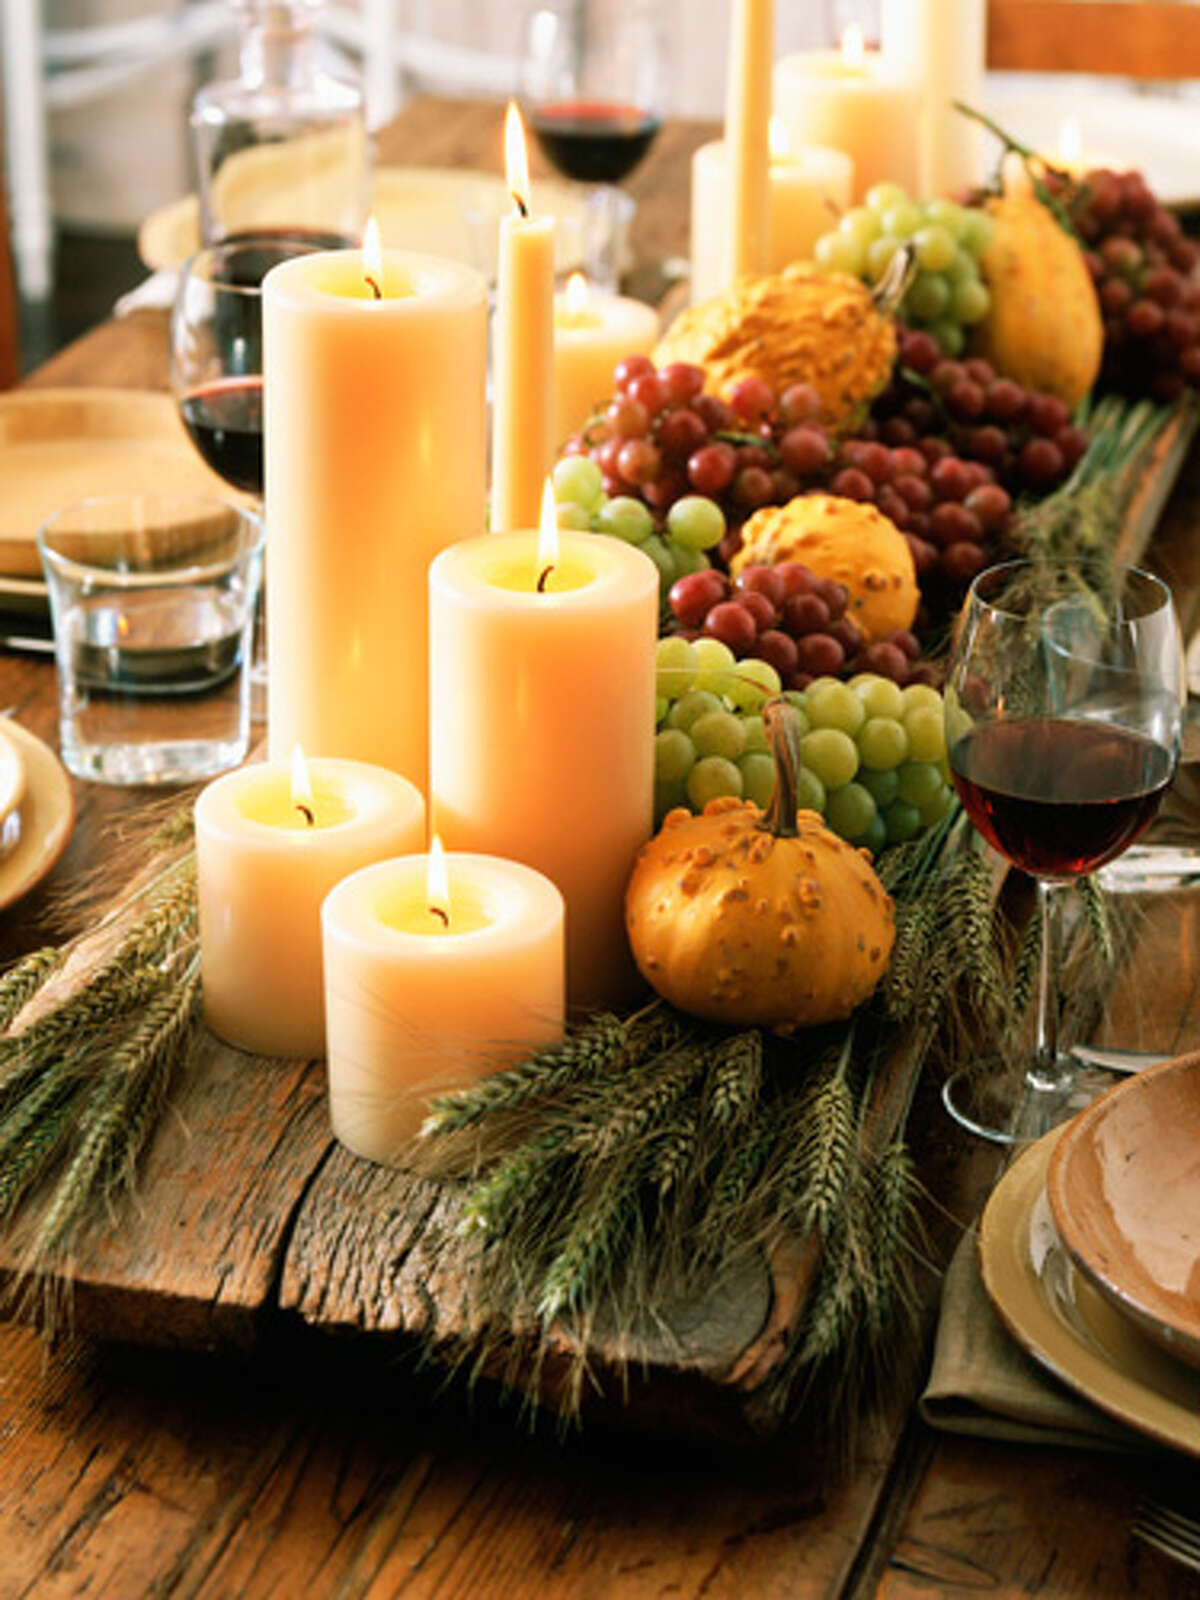 White Pillar Candles Arrange a large group of scentless white pillar candles in various heights on a large wooden tray in the center of your dining table. Add wheat stalks, fresh fruit, and gourds for an extra festive display. The Best Thanksgiving Turkey RecipesRecipes for Thanksgiving LeftoversDelicious Thanksgiving DessertsThe Best Thanksgiving PiesFresh Thanksgiving Table IdeasCozy Ways To Decorate For Fall